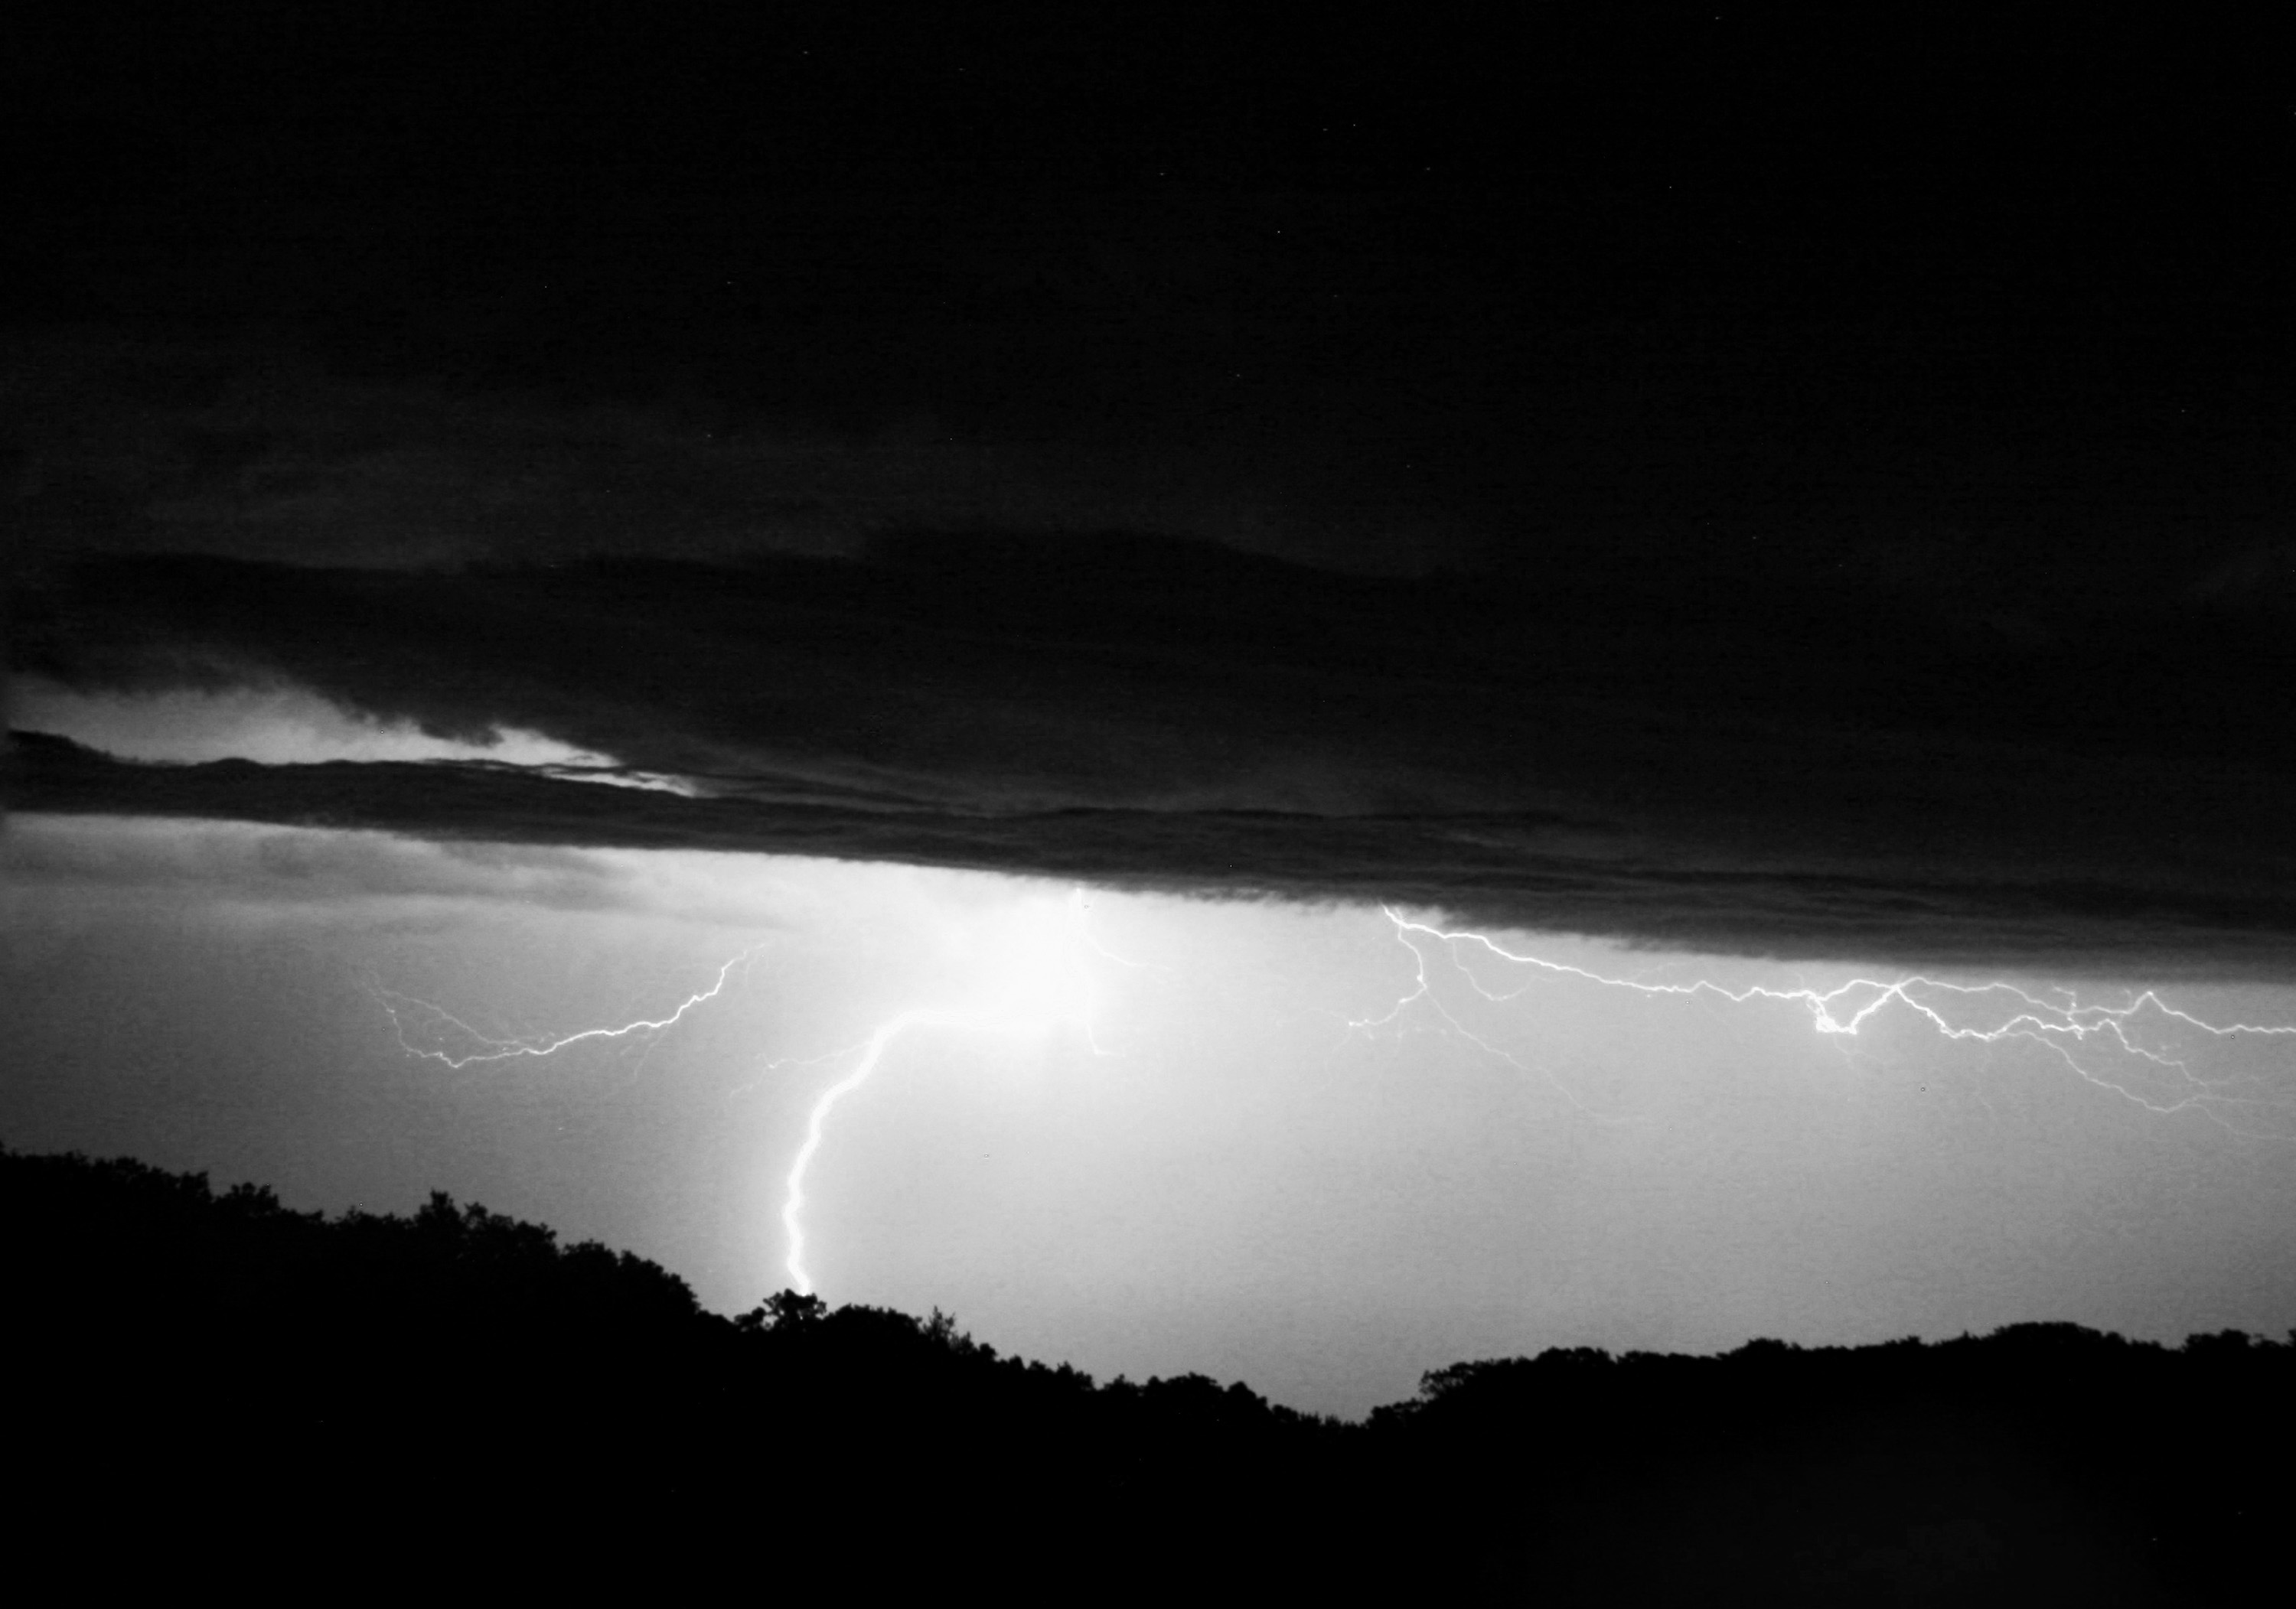 iowa-lightning-bw-2017.jpg